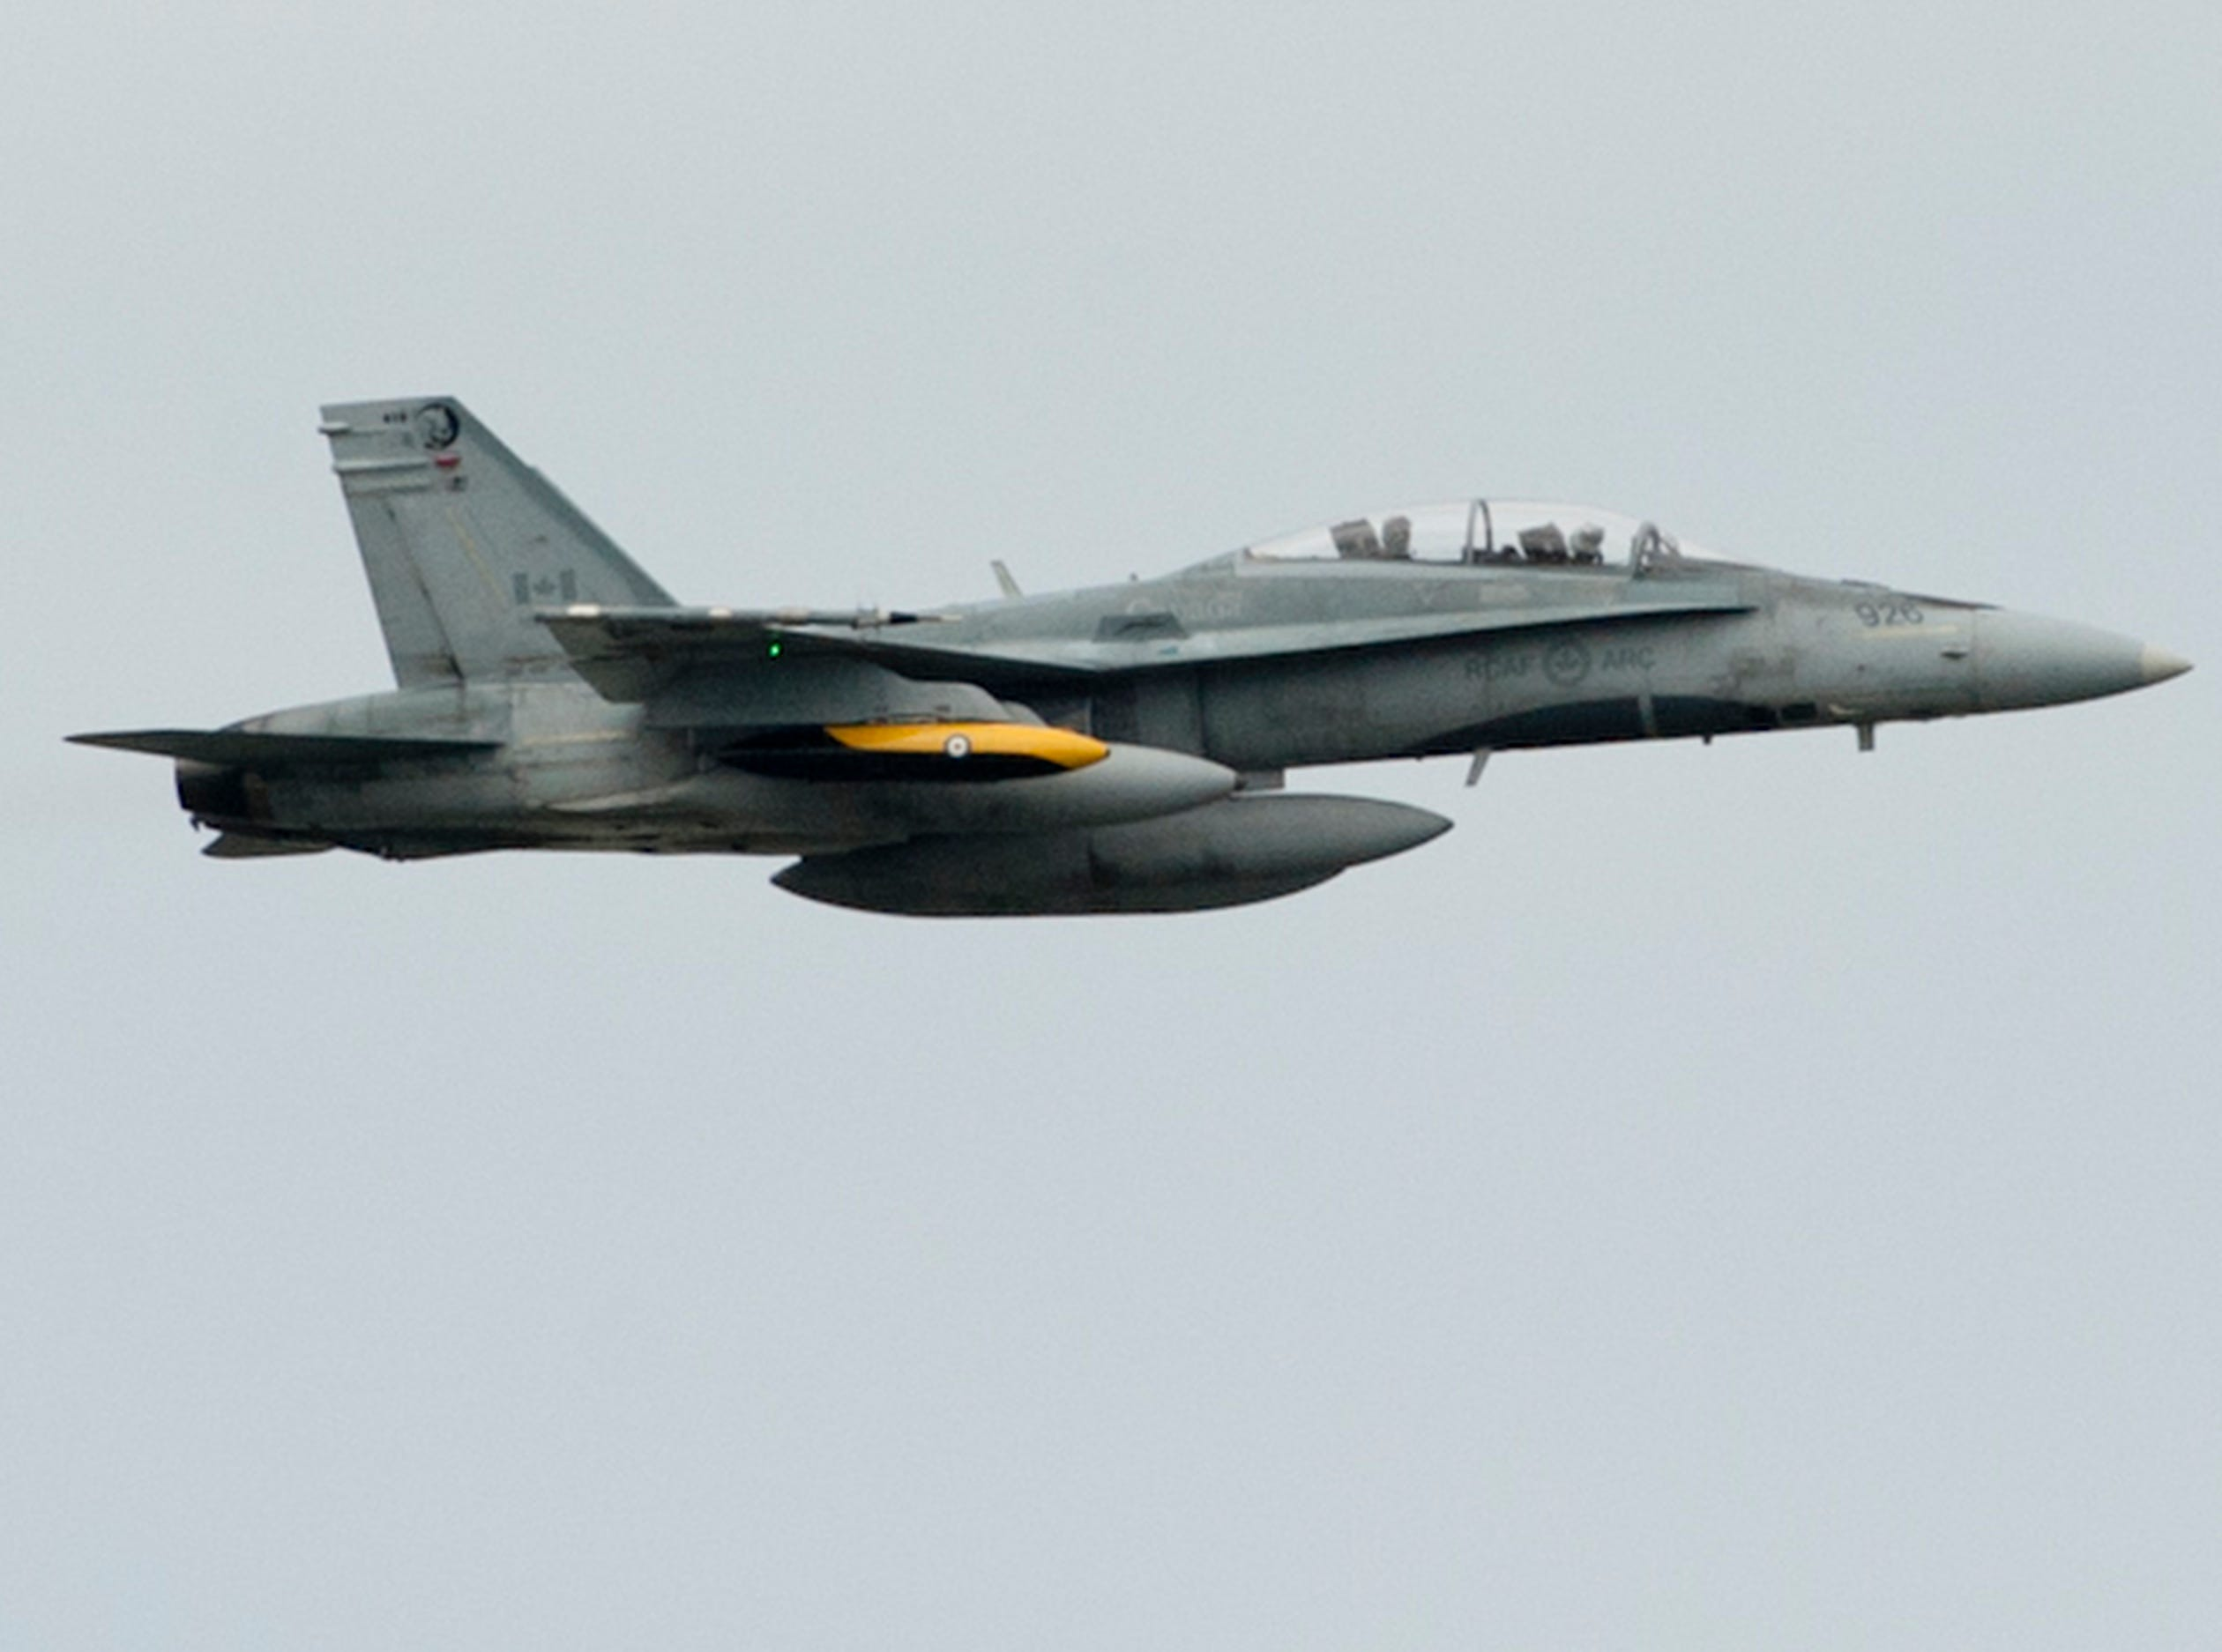 A CF-18 flown by the Royal Canadian Air Force's 401 Tactical Fighter Squadron soars by at the 2019 Thunder Over Louisville Air Show.13 April 2019